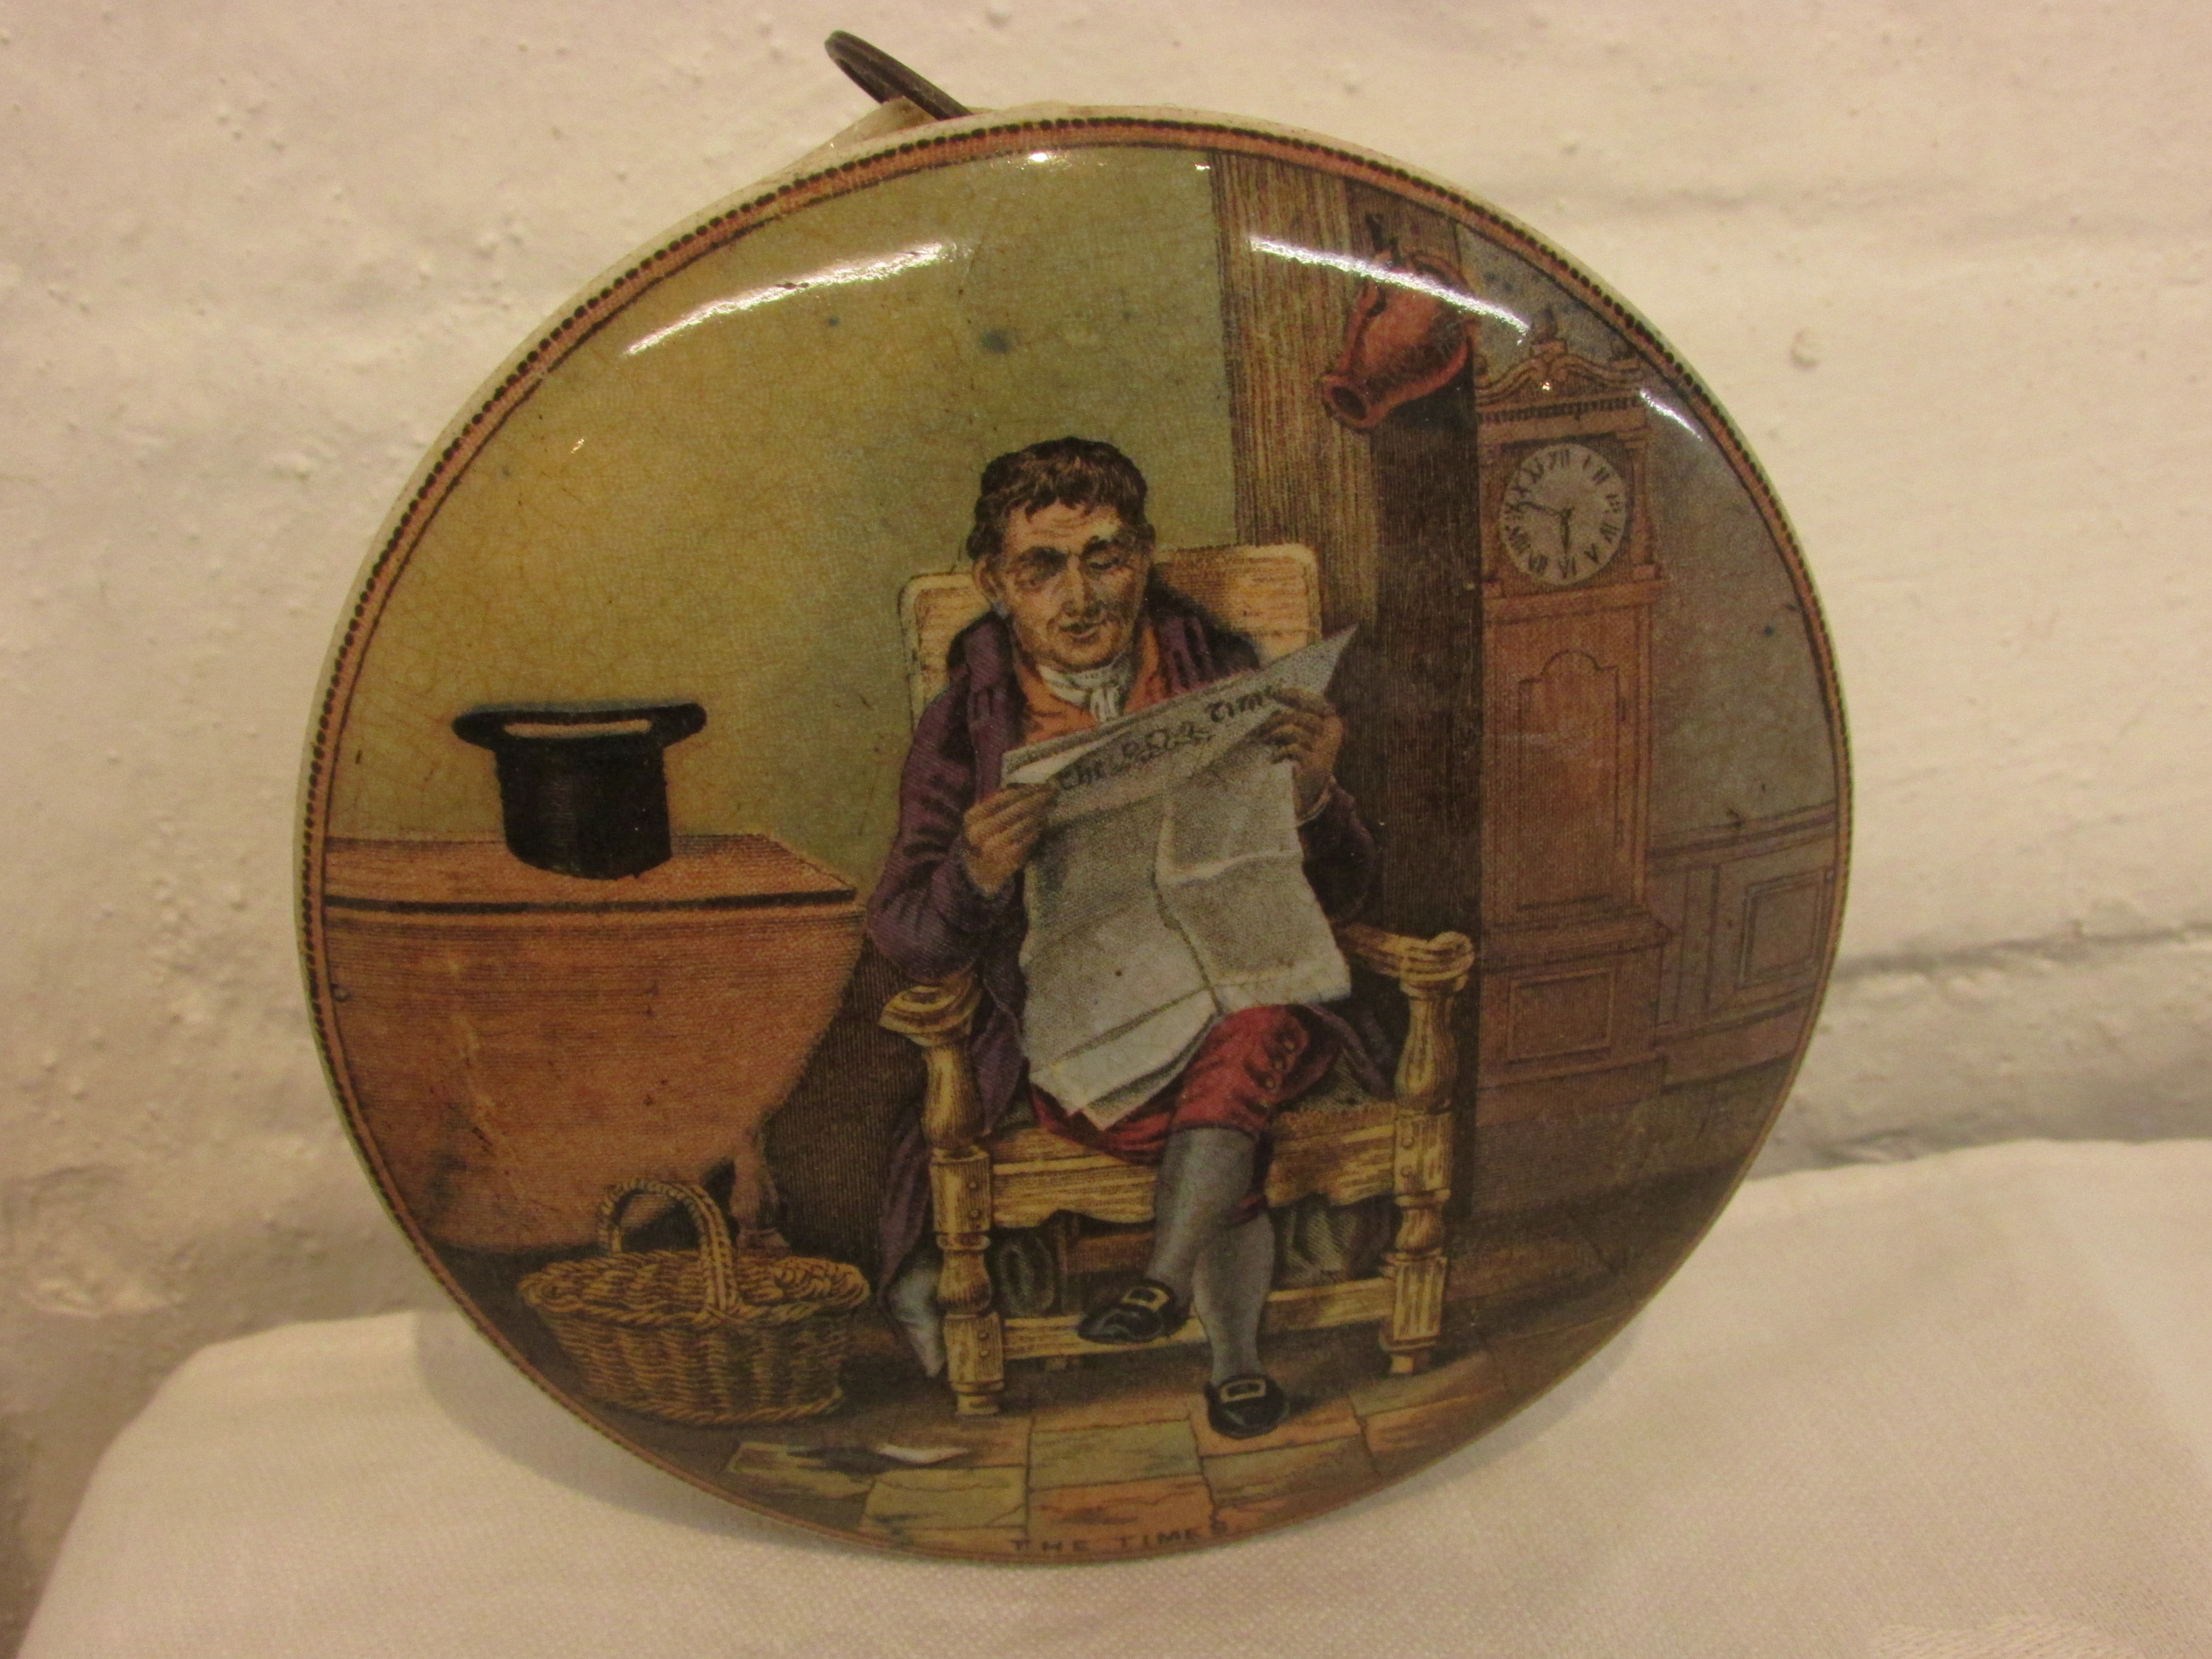 Lot 53 - Seven Pratt pot lids - The Trooper, The Times, P. Wouverman Pinx, The Shrimpers, Hide and Seek, Game